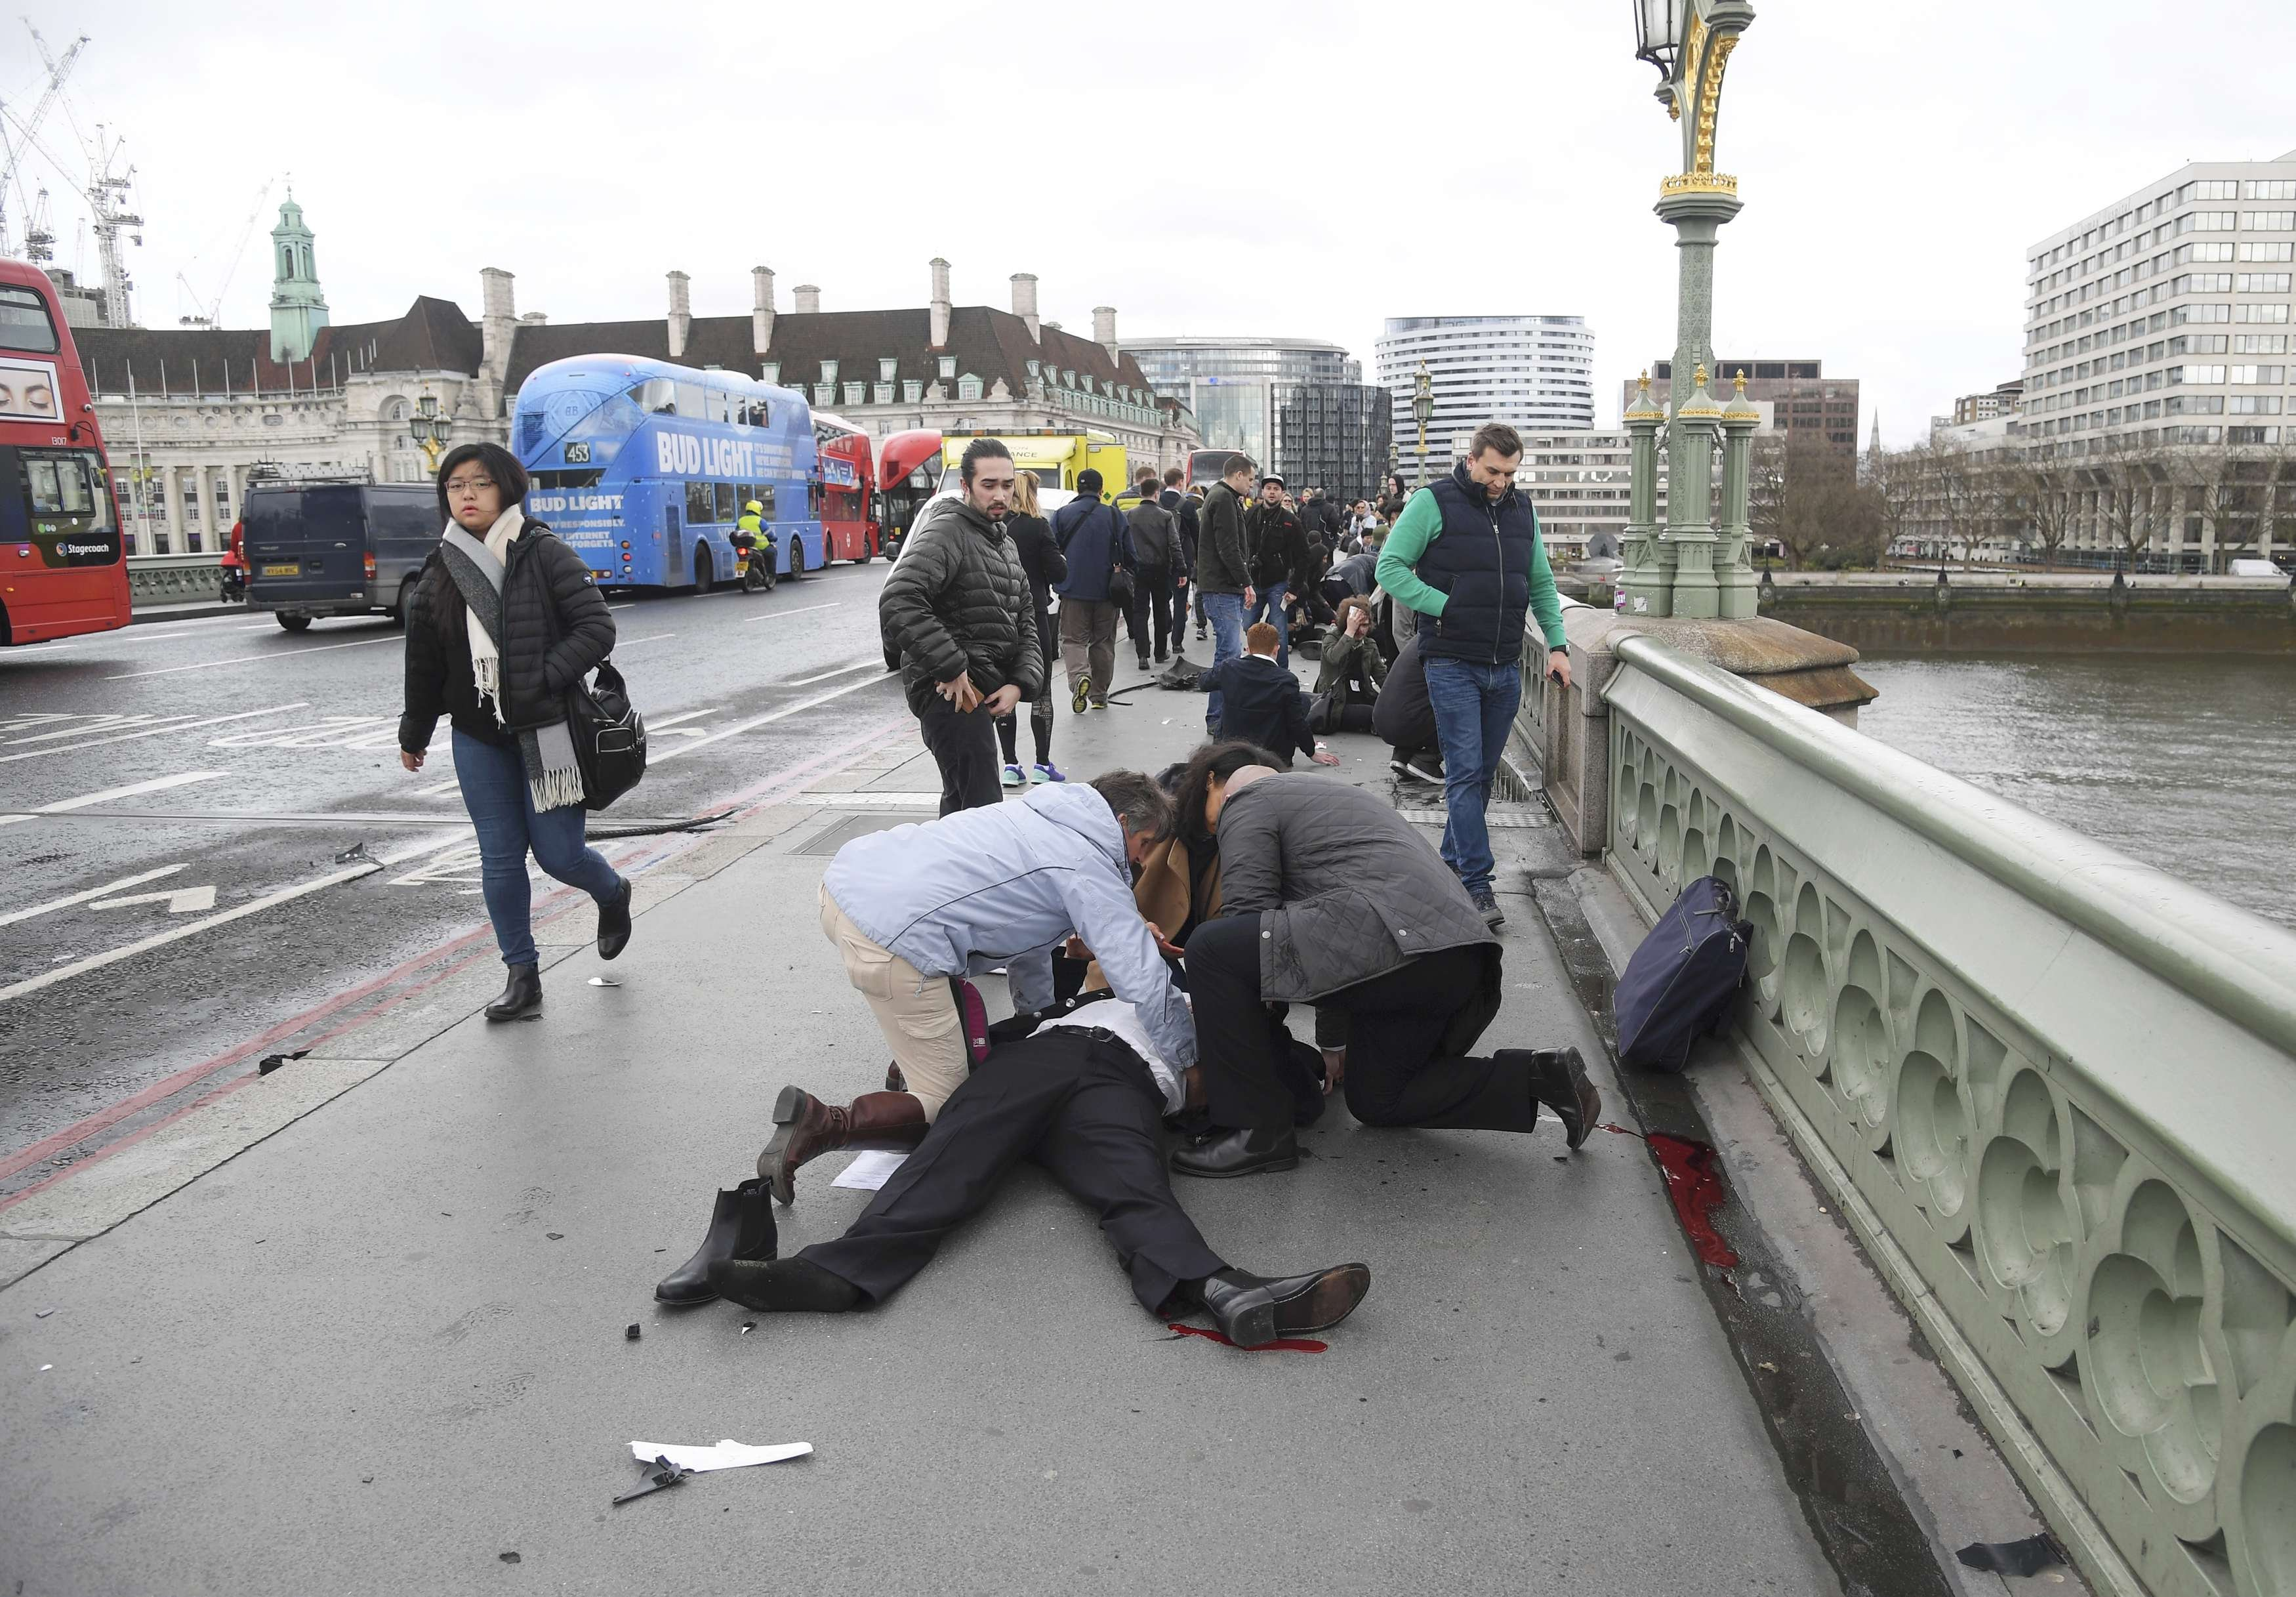 Injured people are assisted after an incident on Westminster Bridge, on March 22, 2017.